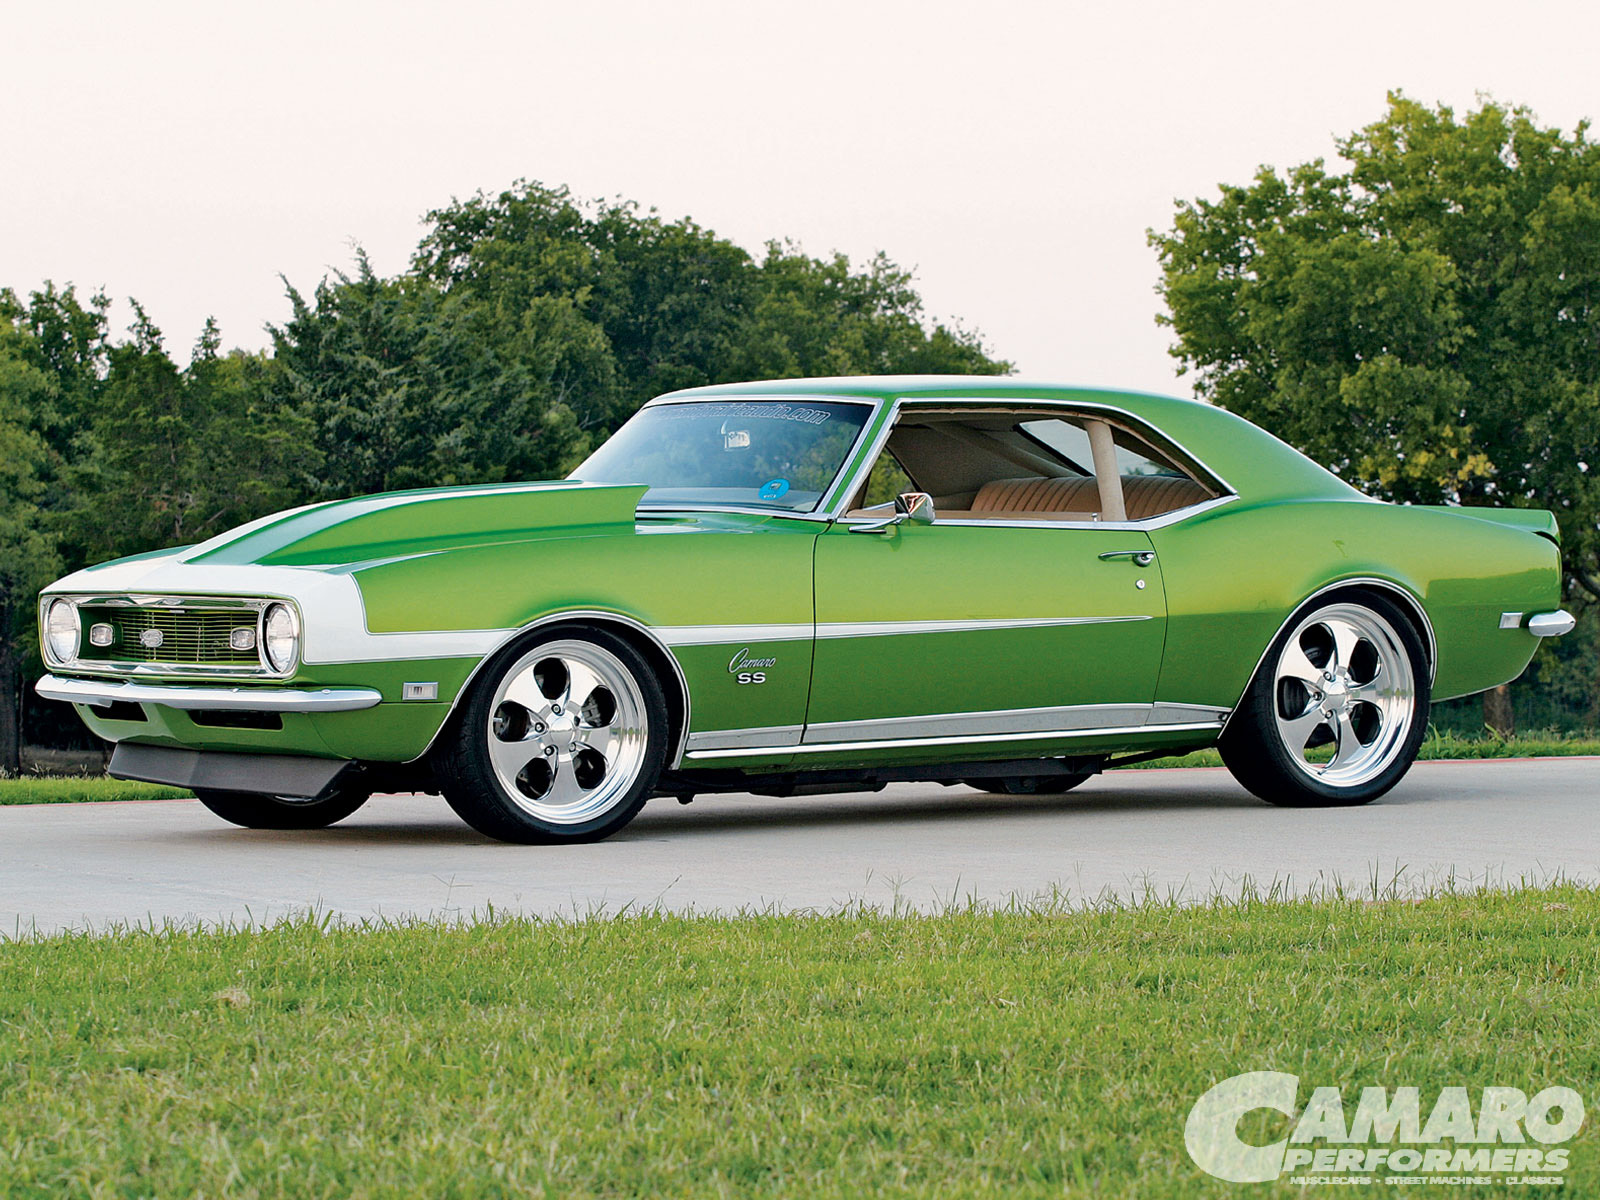 Classic Cars 1968 Chevrolet Camaro Svms Times